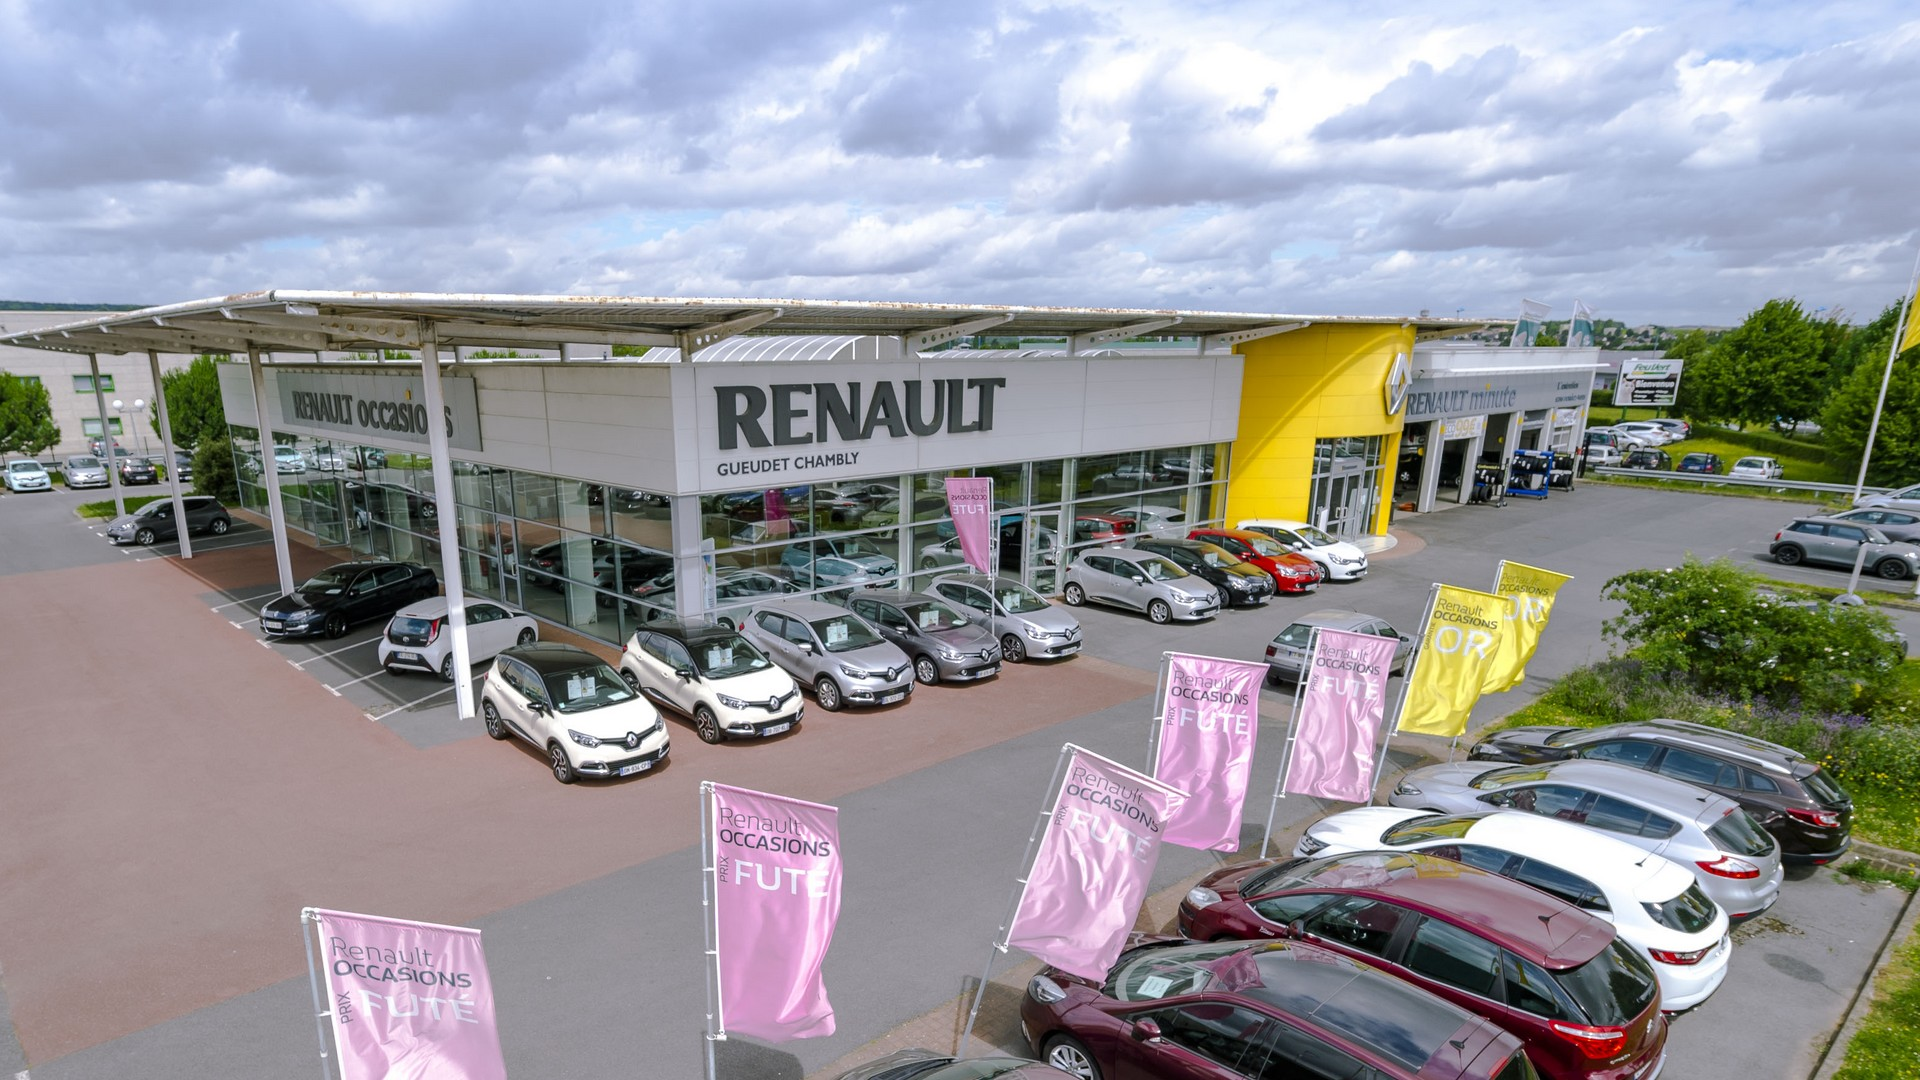 Concession renault chambly vente de voiture neuve for Garage renault gueudet chambly